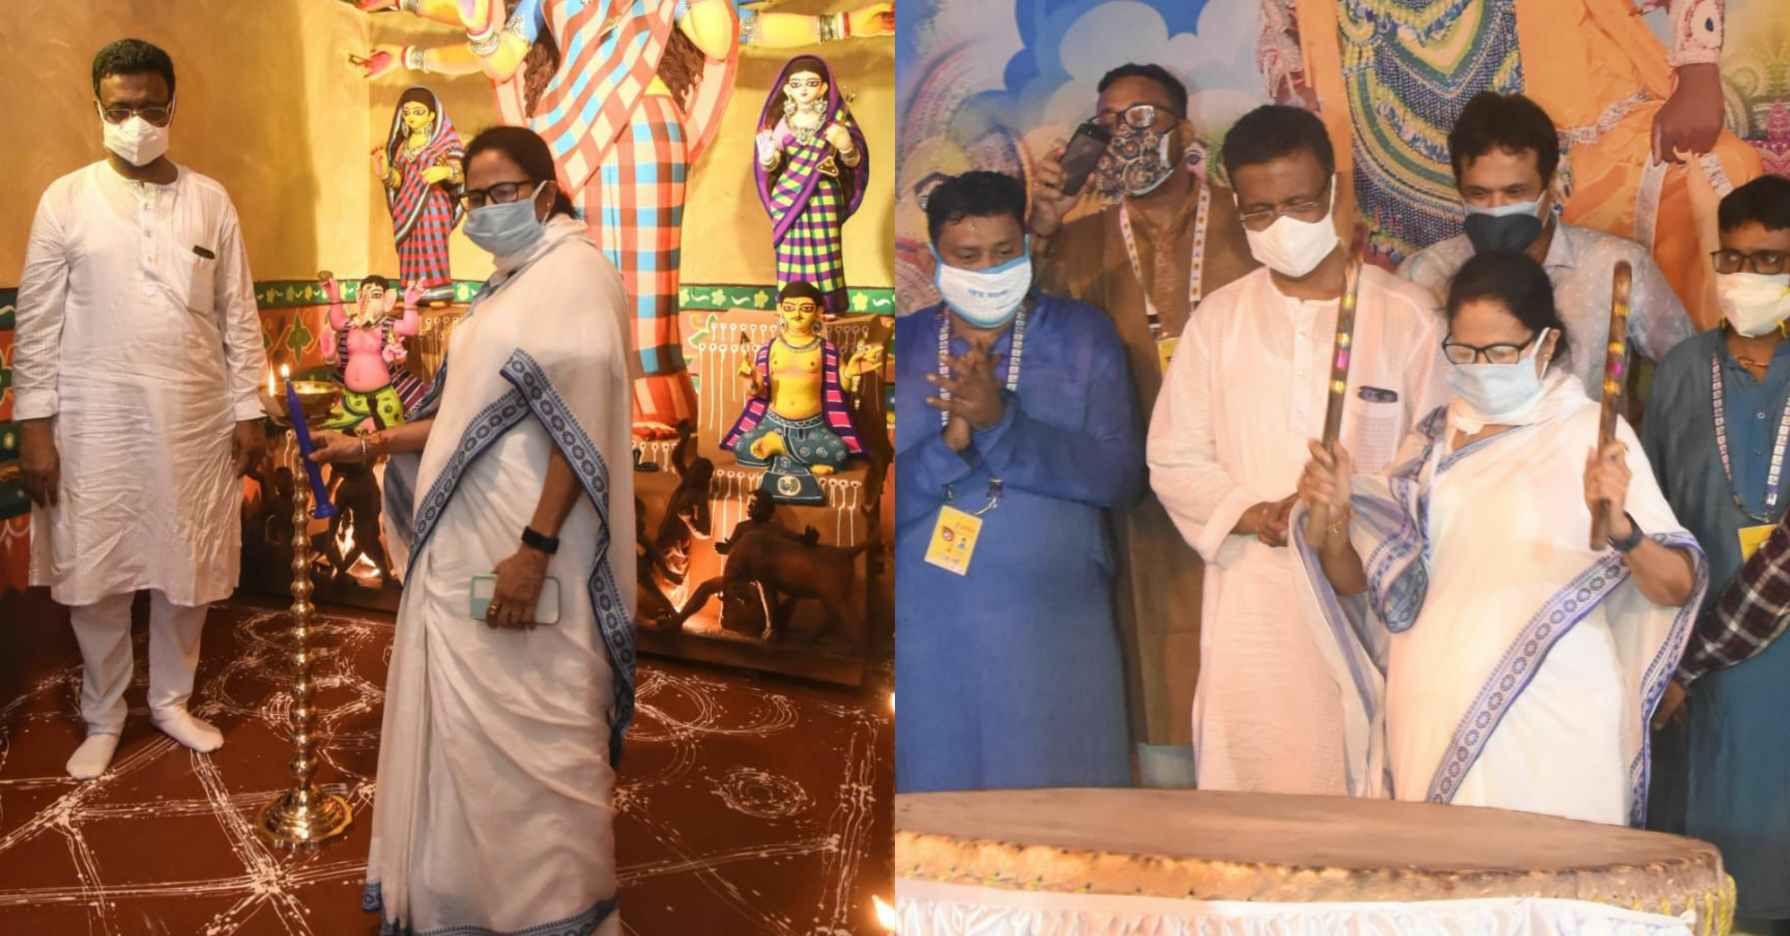 Mamata Banerjee inaugurated Bhowanipur 75 Palli Durga Puja with its theme 'MANOBIK' to uplift the morale of the internationally acclaimed 'Chhau Dancers' from Purulia District of WB